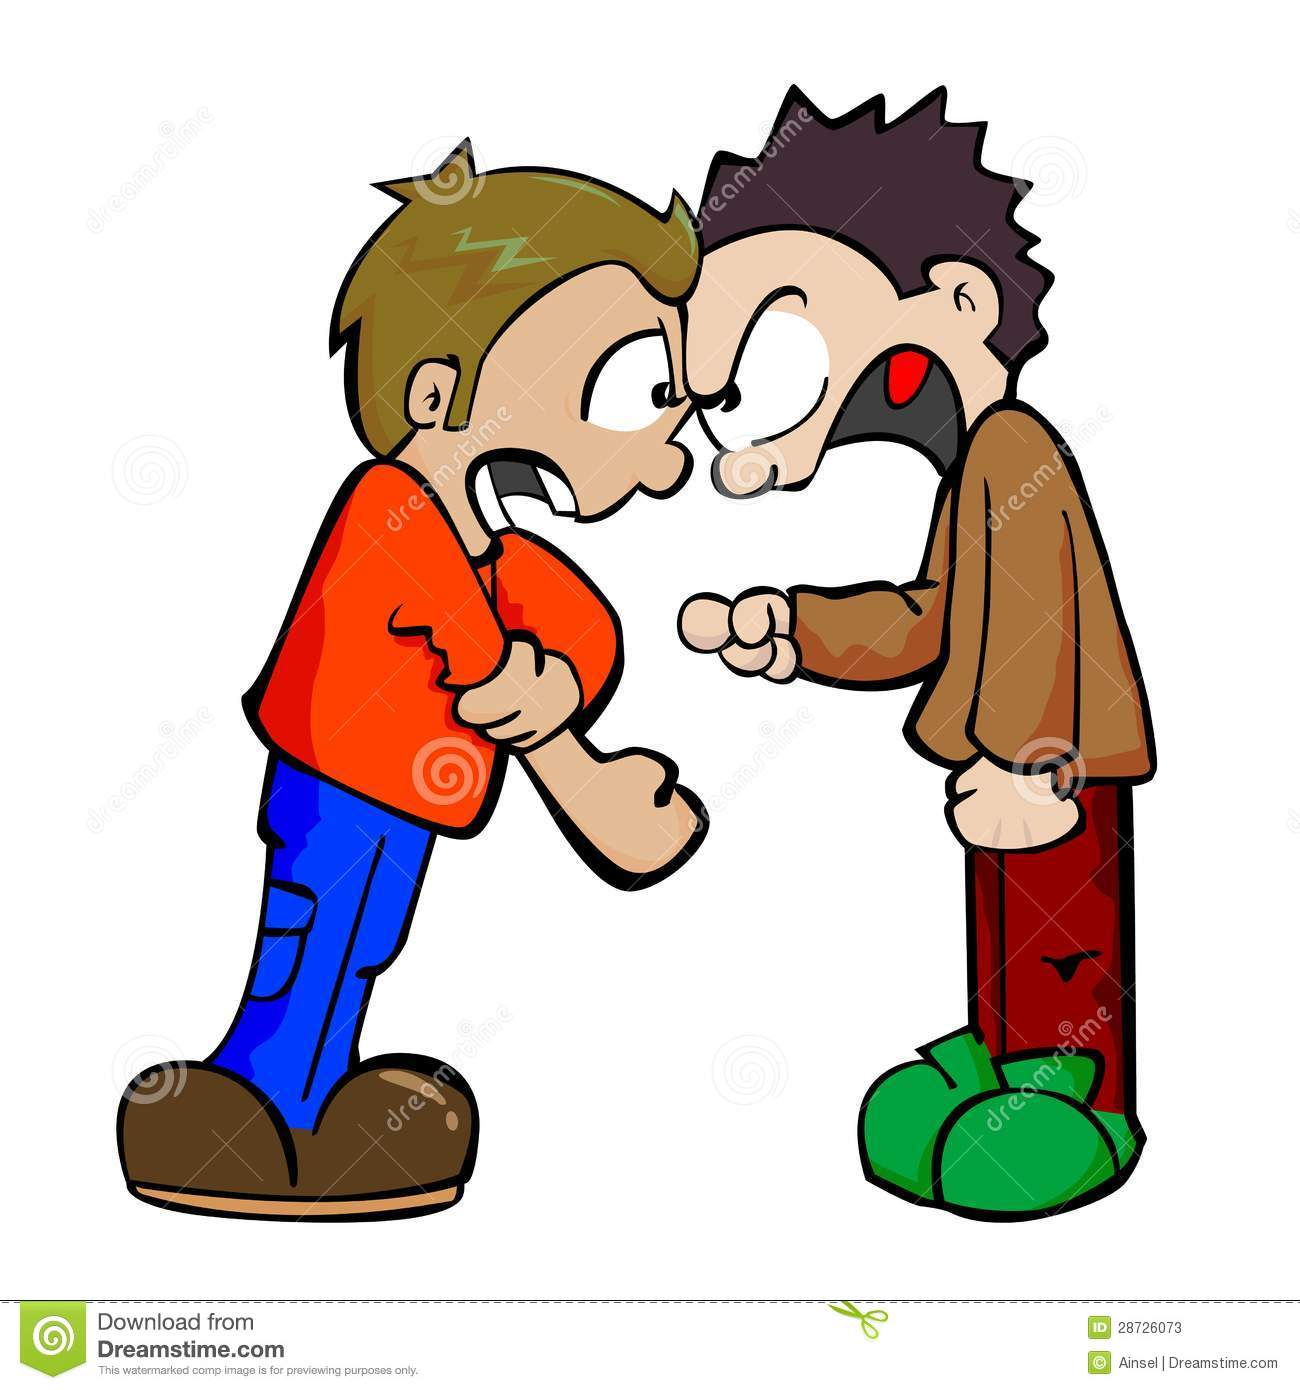 Kopel clipart fighting Clip clipart collection Fighting Arguing